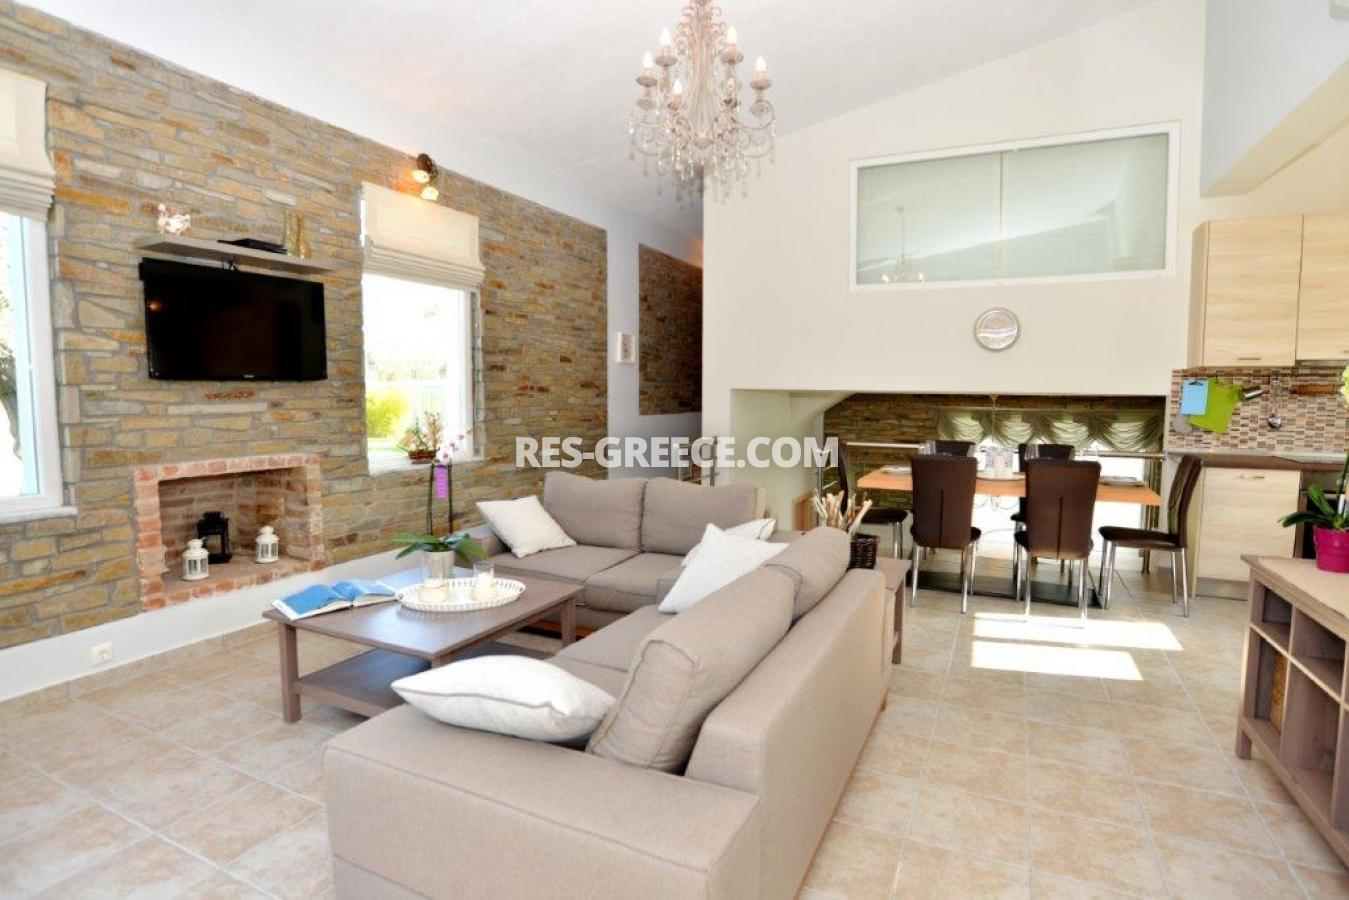 Arhondula Villa 3, Northern Aegean Islands, Greece - ready beachfront complex for rent on Thassos island with EOT licences - Photo 1